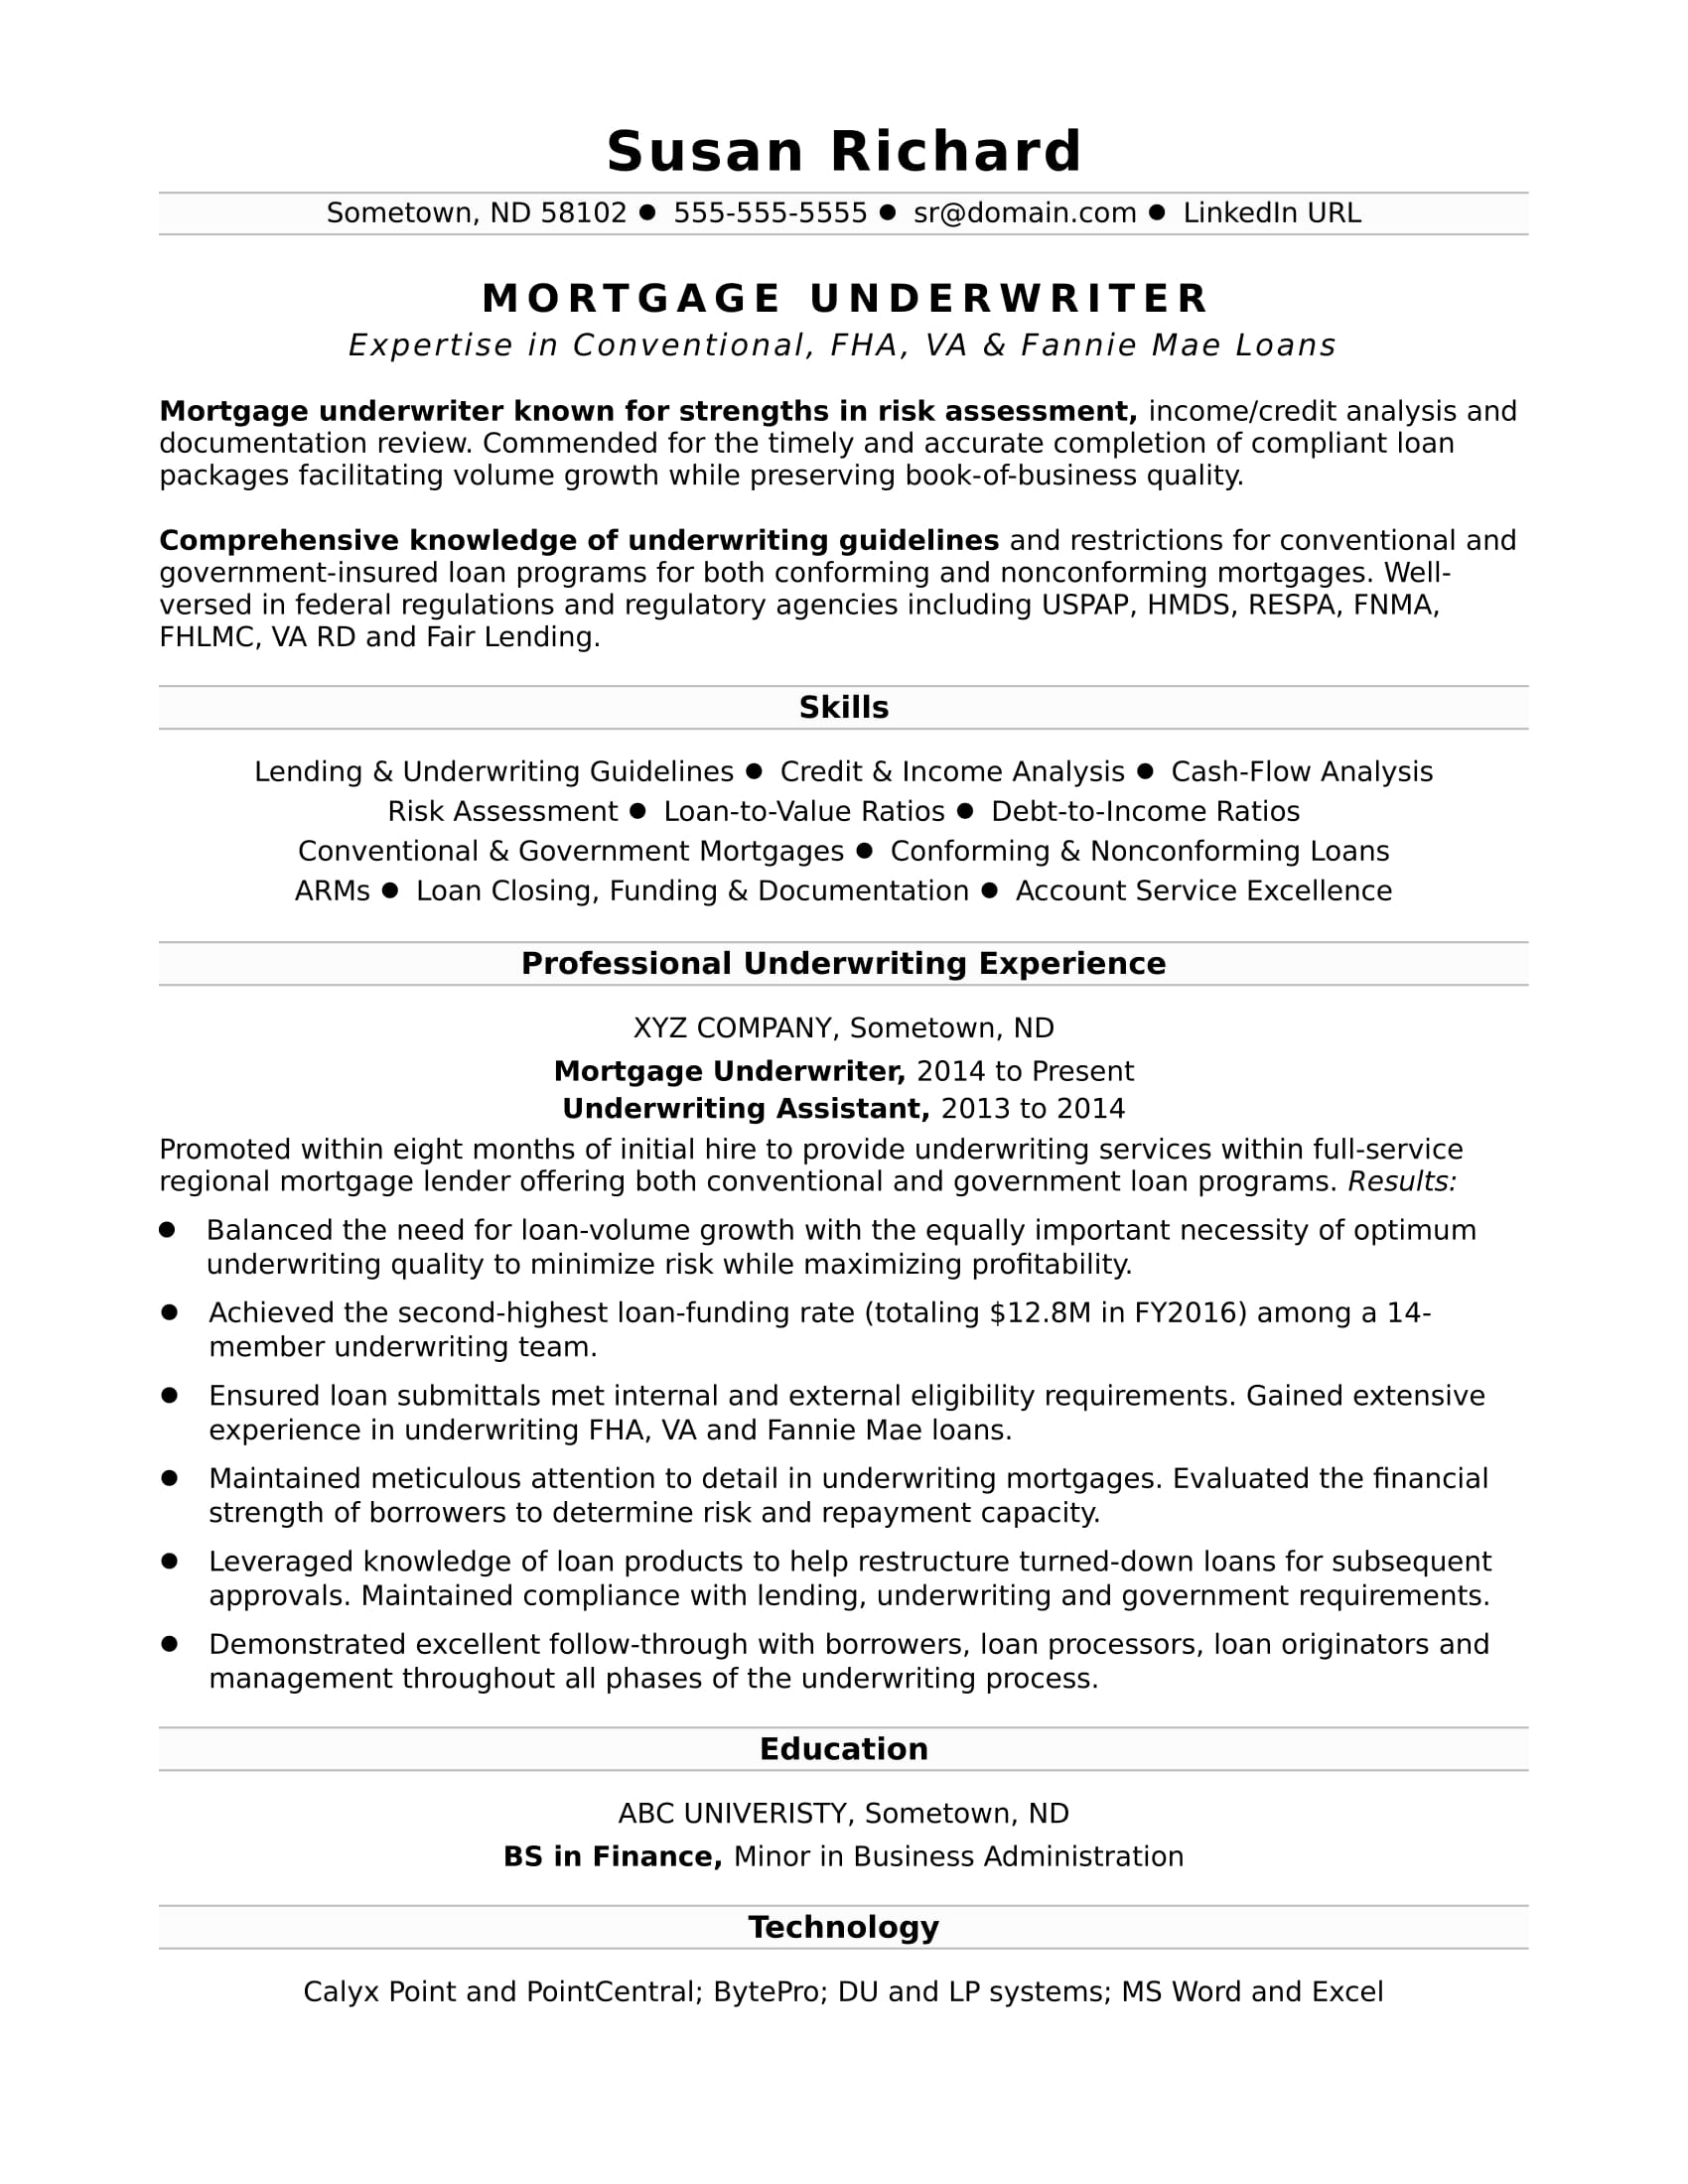 Sample Resume For A Mortgage Underwriter  Example Of An Resume